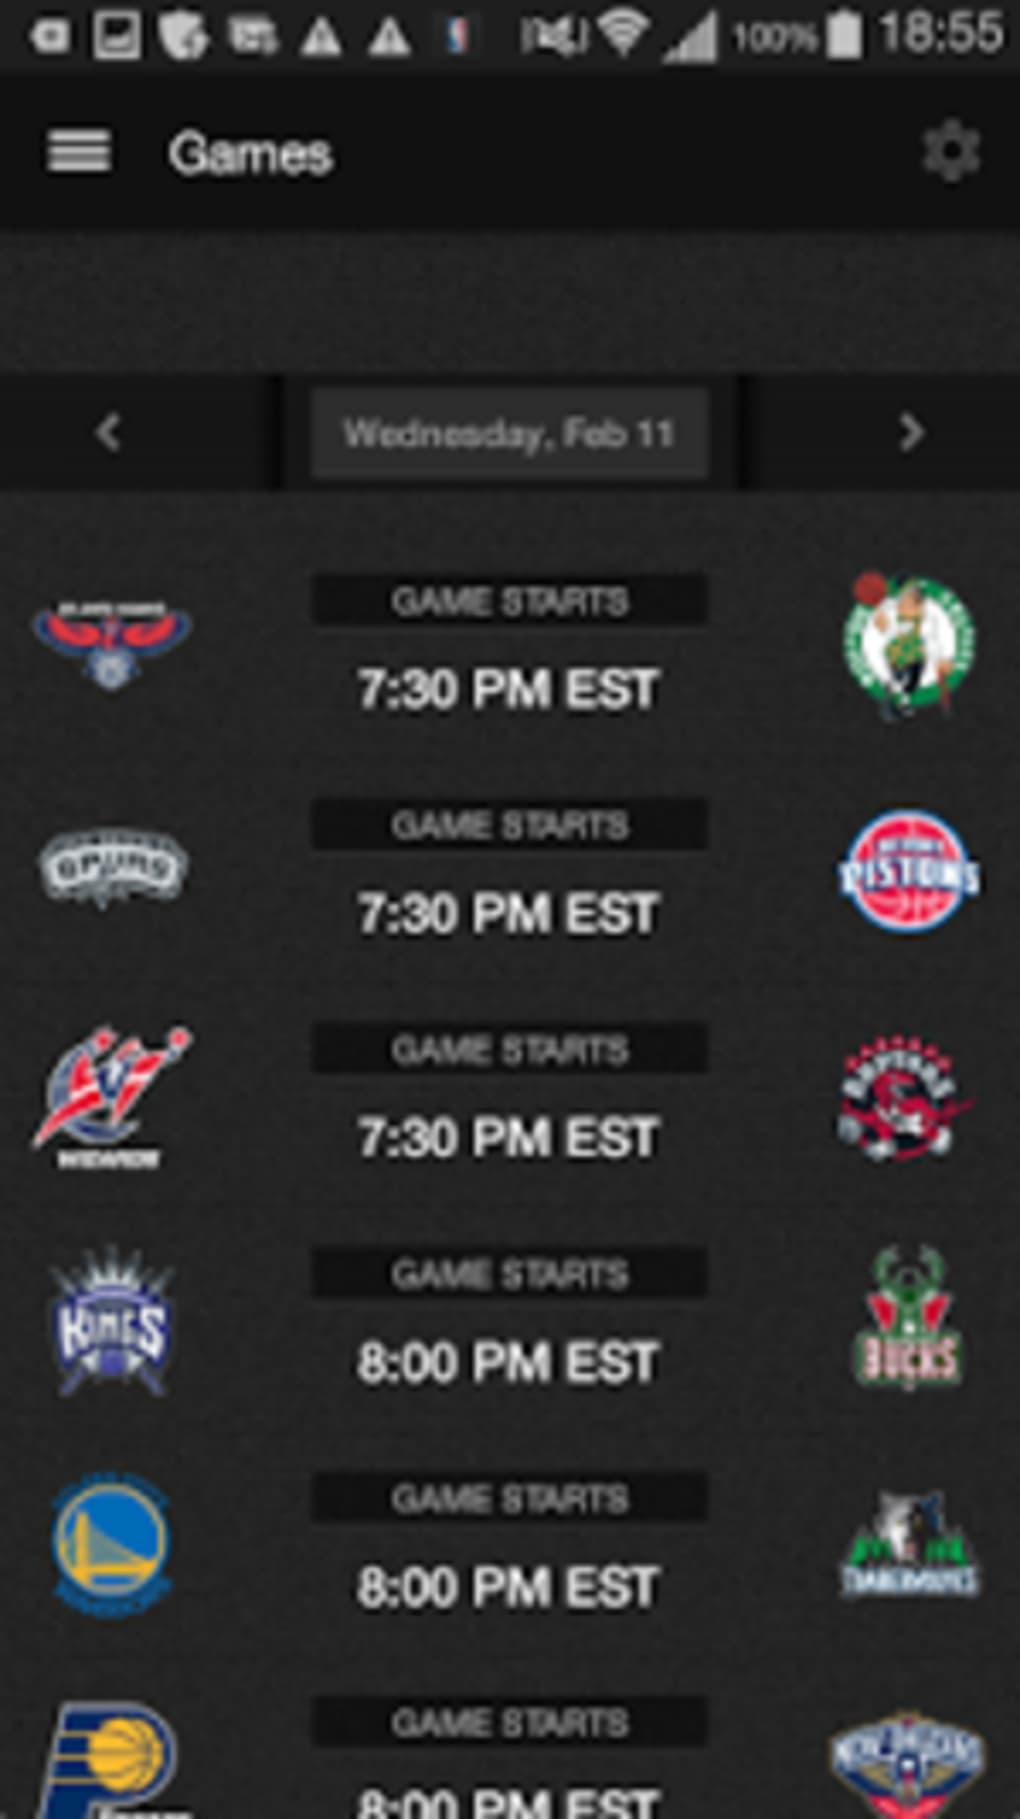 NBA GAME TIME for Android - Download